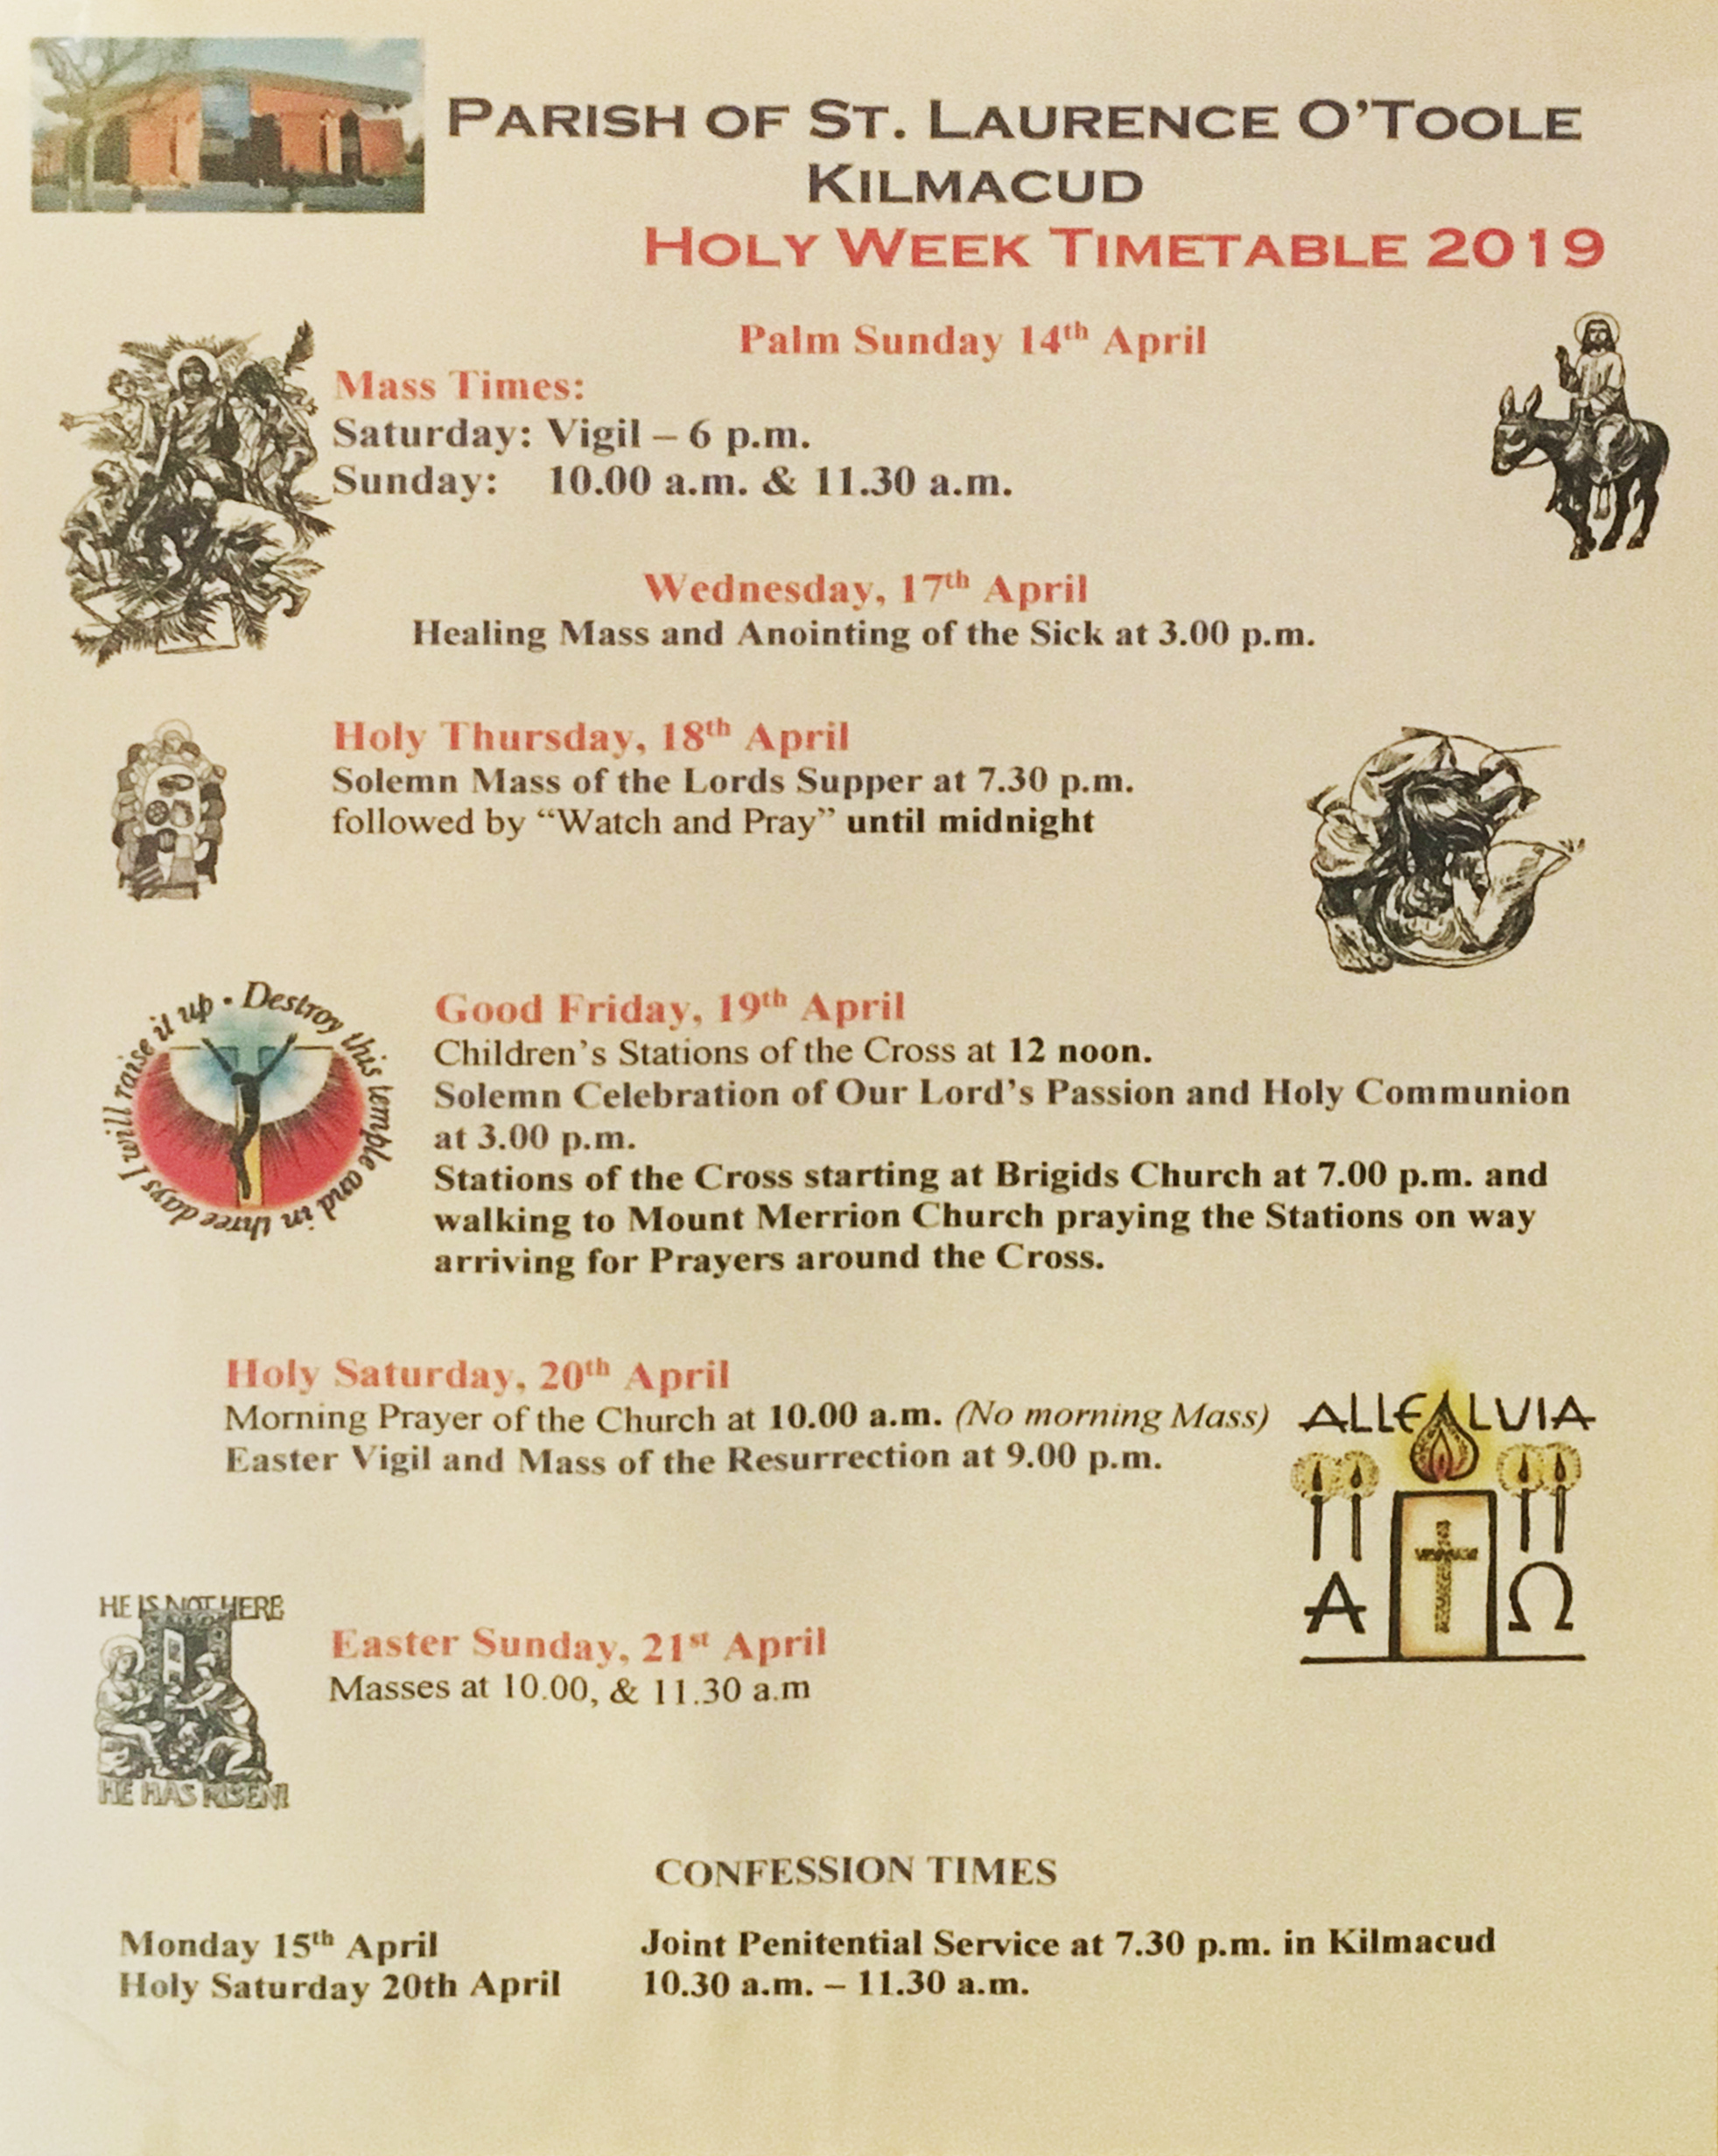 Kilmacud Parish: Holy Week